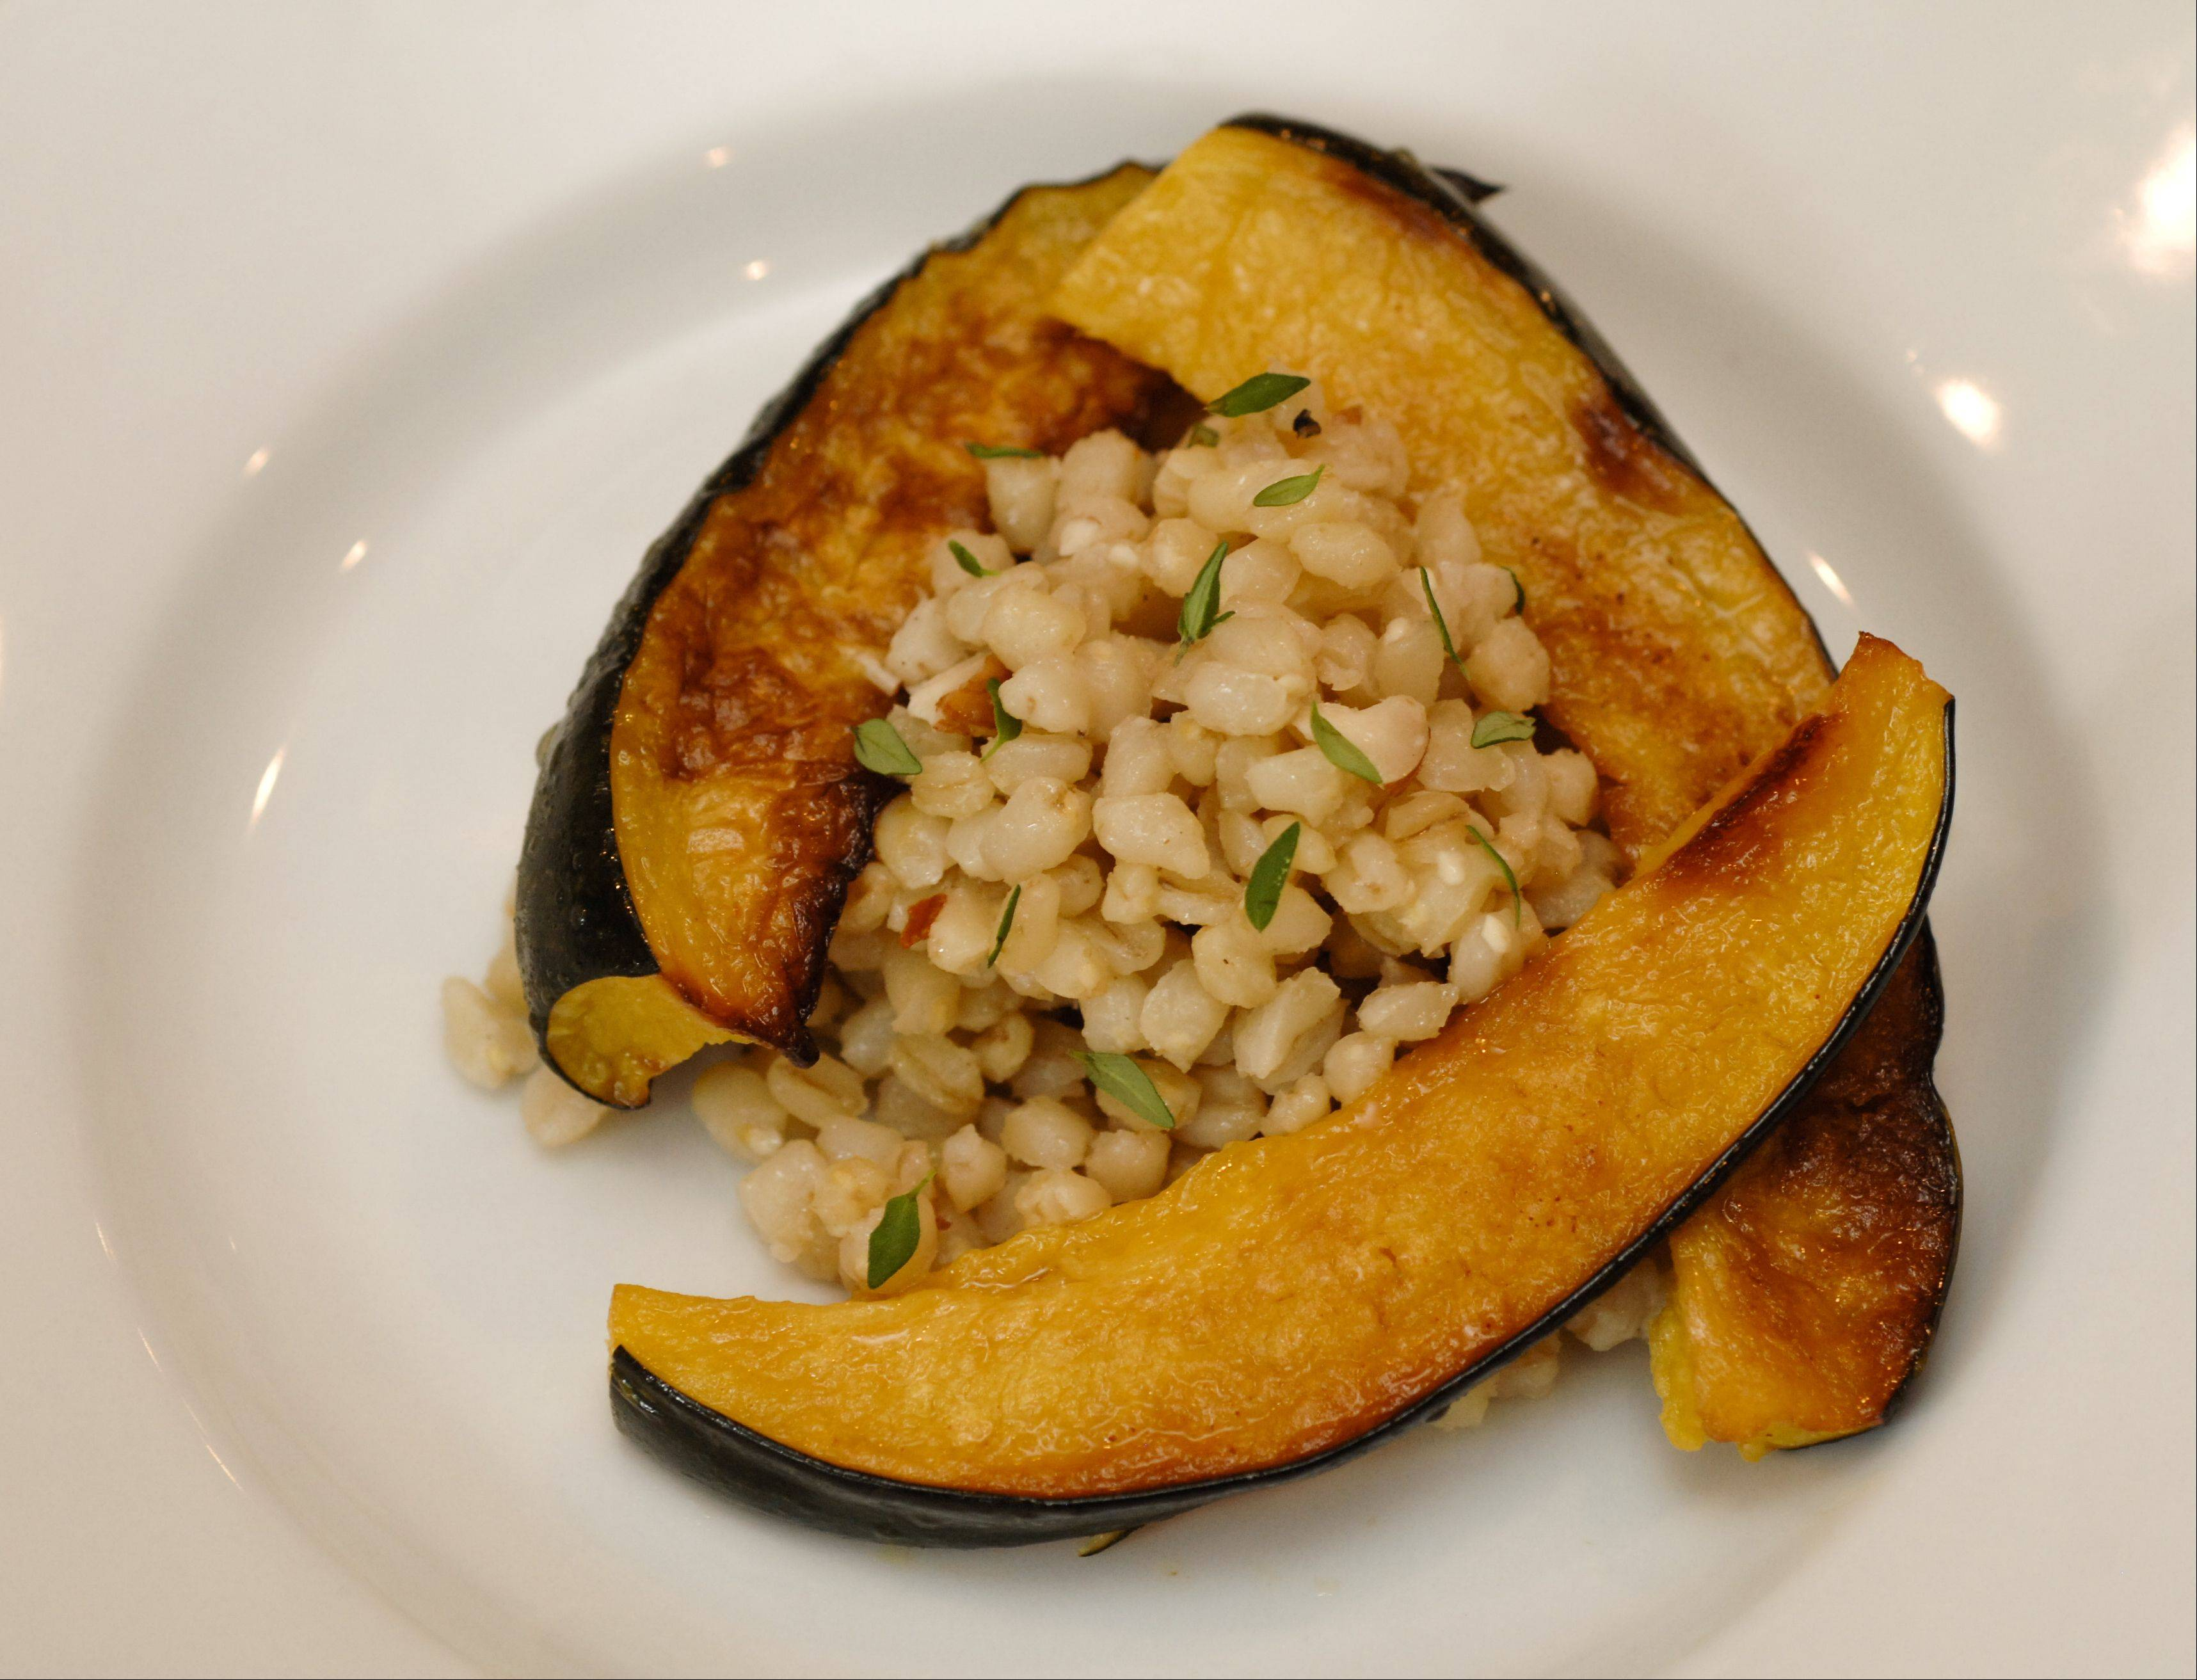 Elliott Papineau's acorn squash. Papineau is part of the Daily Herald Cook of the Week Challenge.